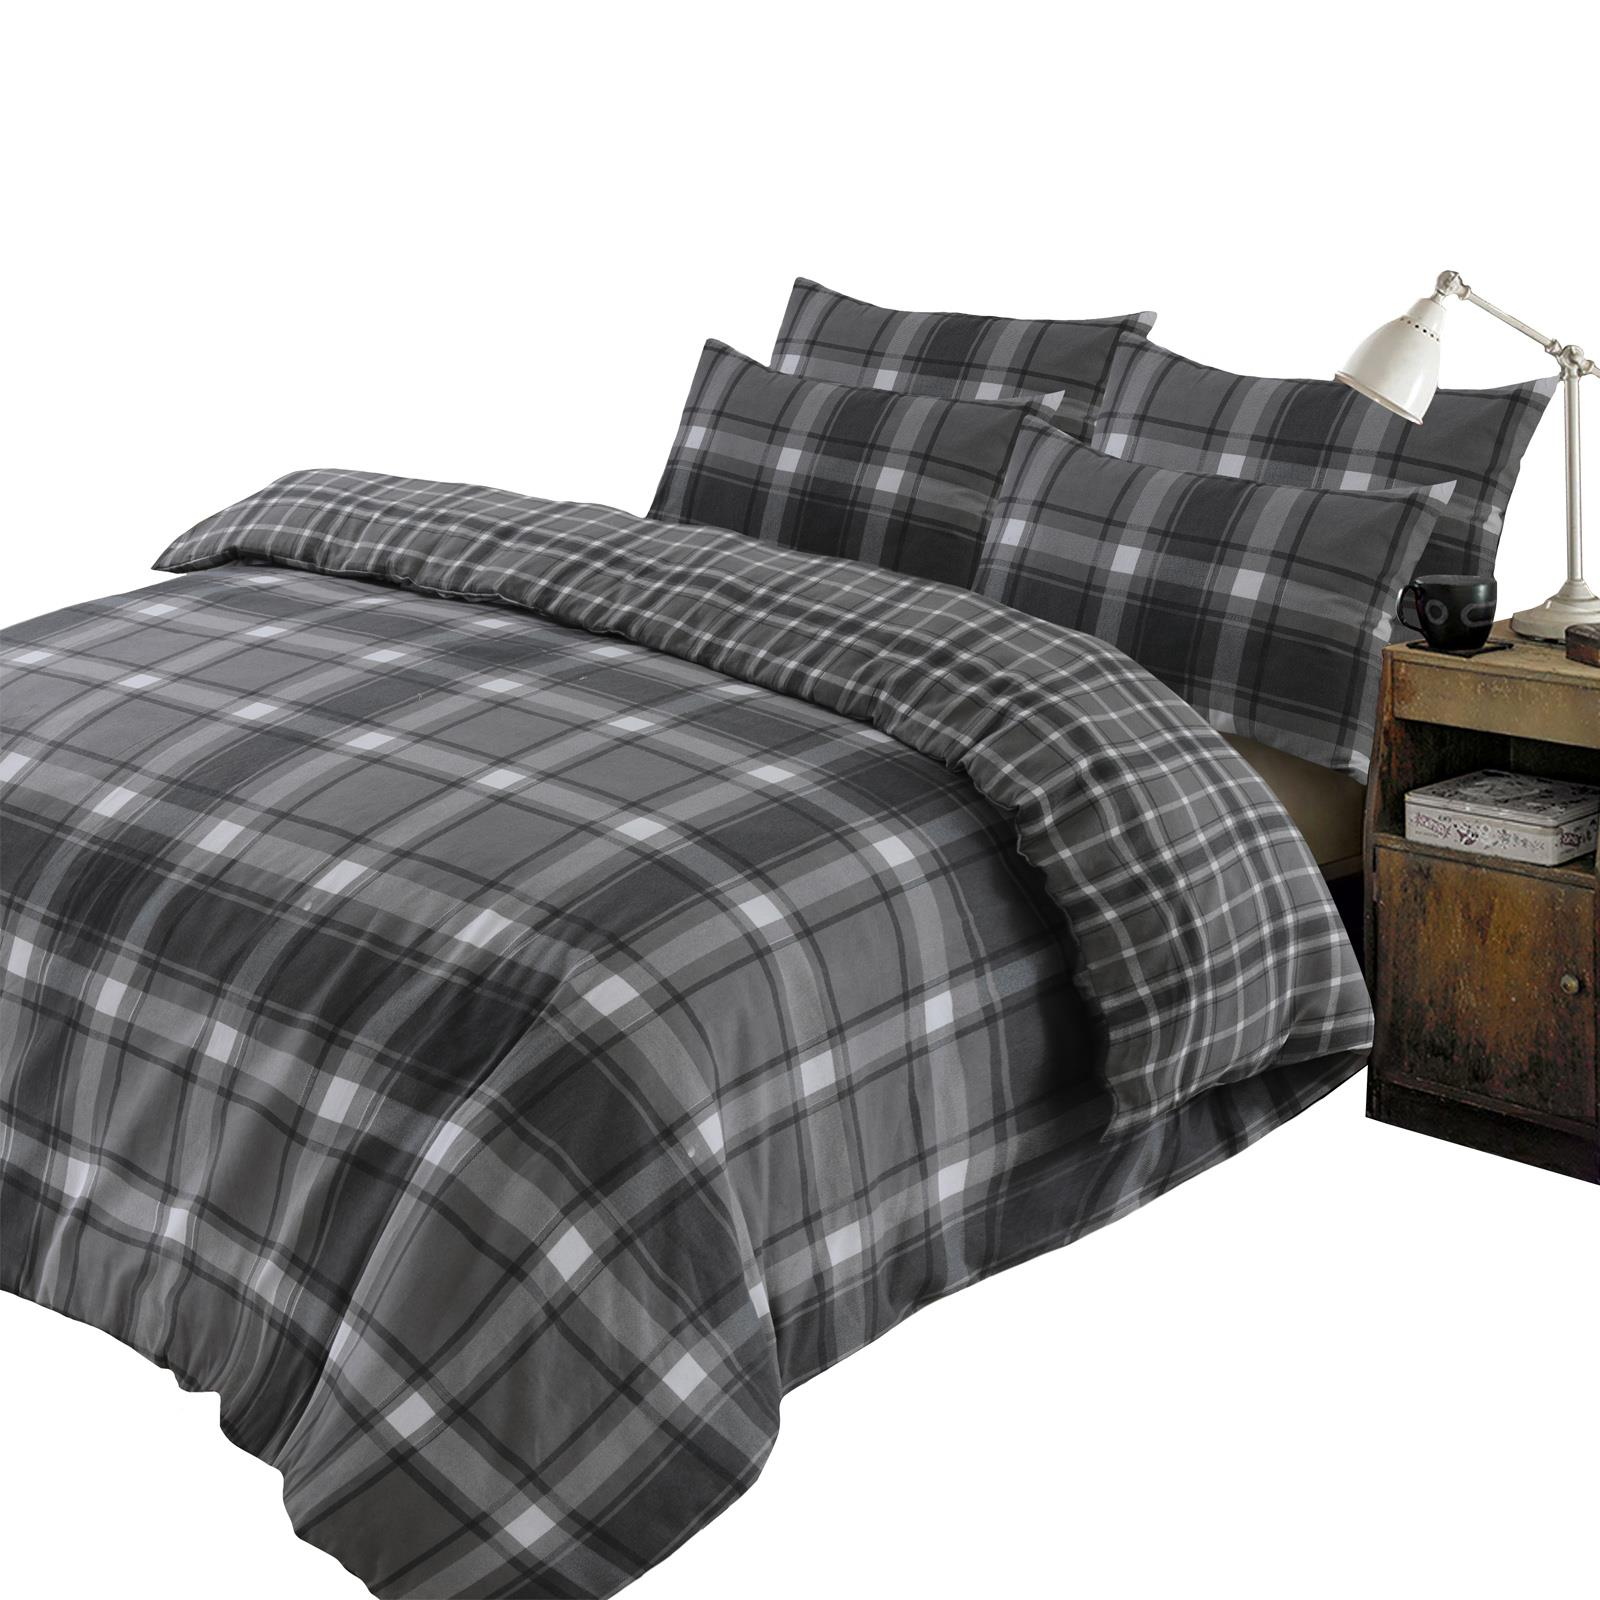 Brushed-Cotton-Tartan-Duvet-Cover-with-Pillowcase-Set-Aspen-Check-Flannelette thumbnail 5